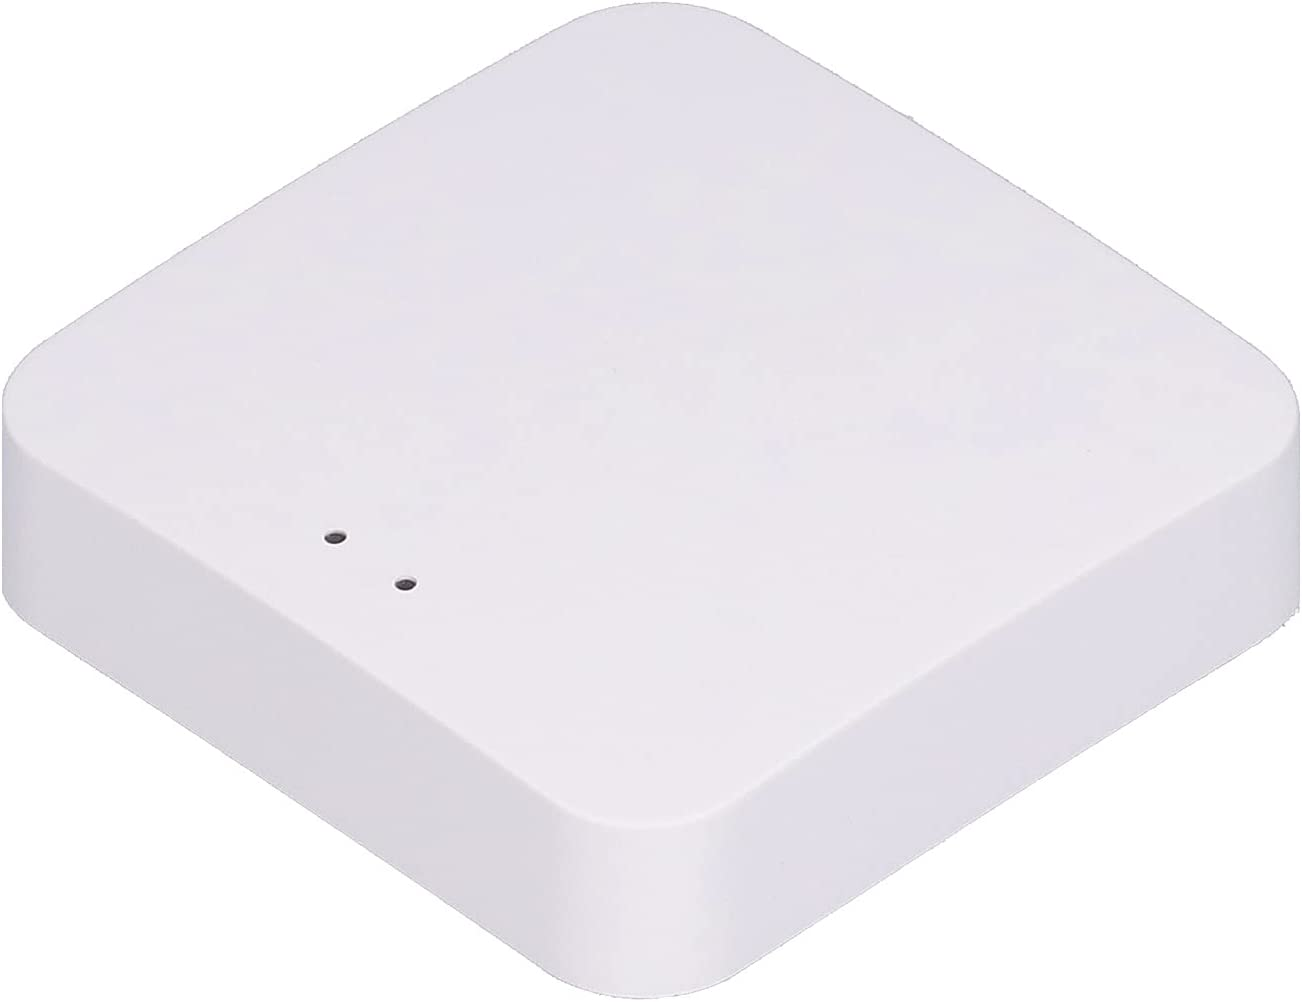 FECAMOS Wireless, Anti-Slip Design Smart Home Wide Coverage for Family Living Room for Office